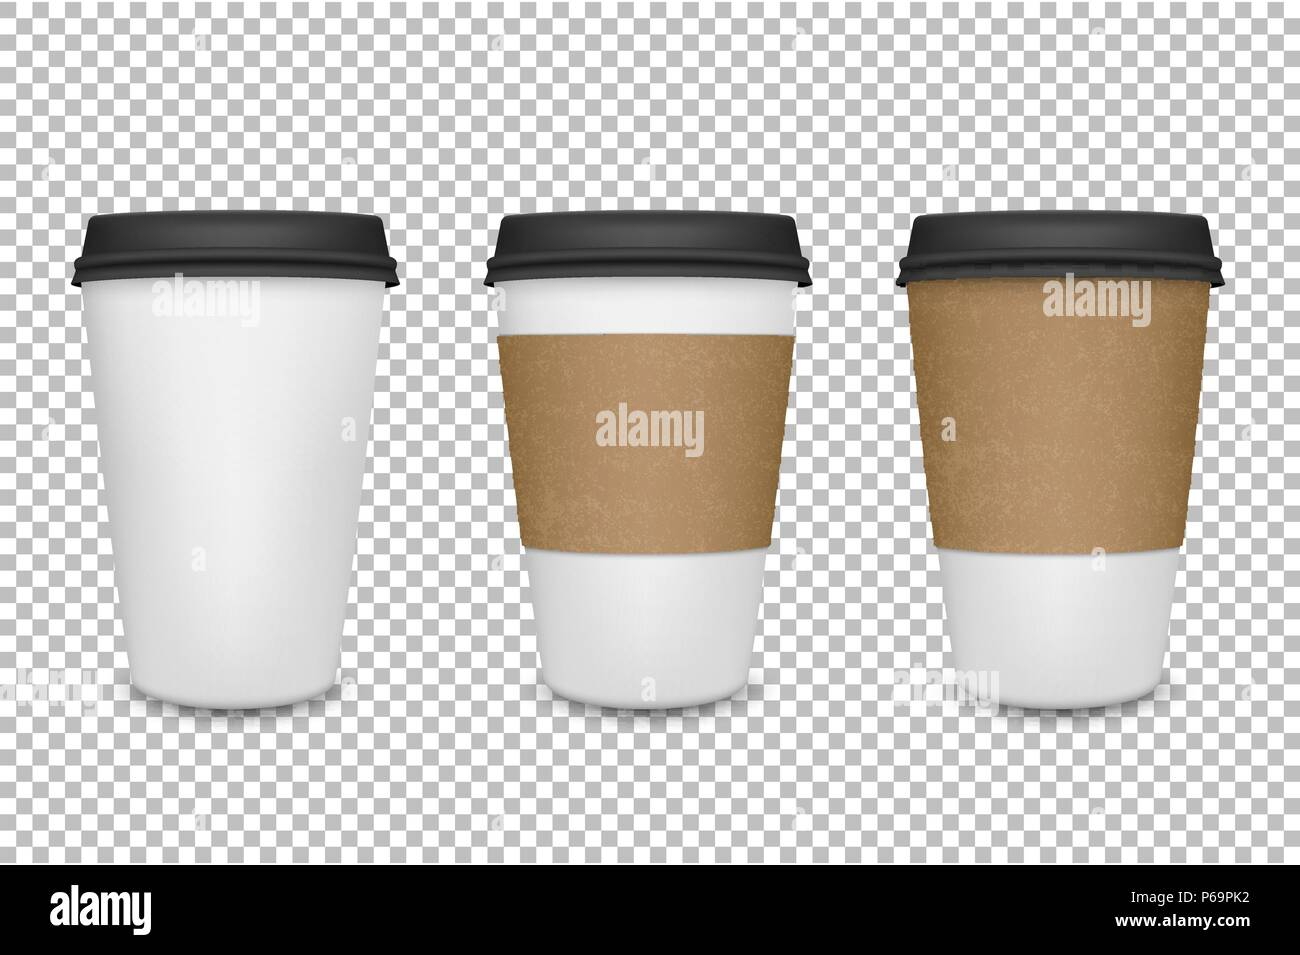 vector realistic 3d paper coffee cup icon set closeup on